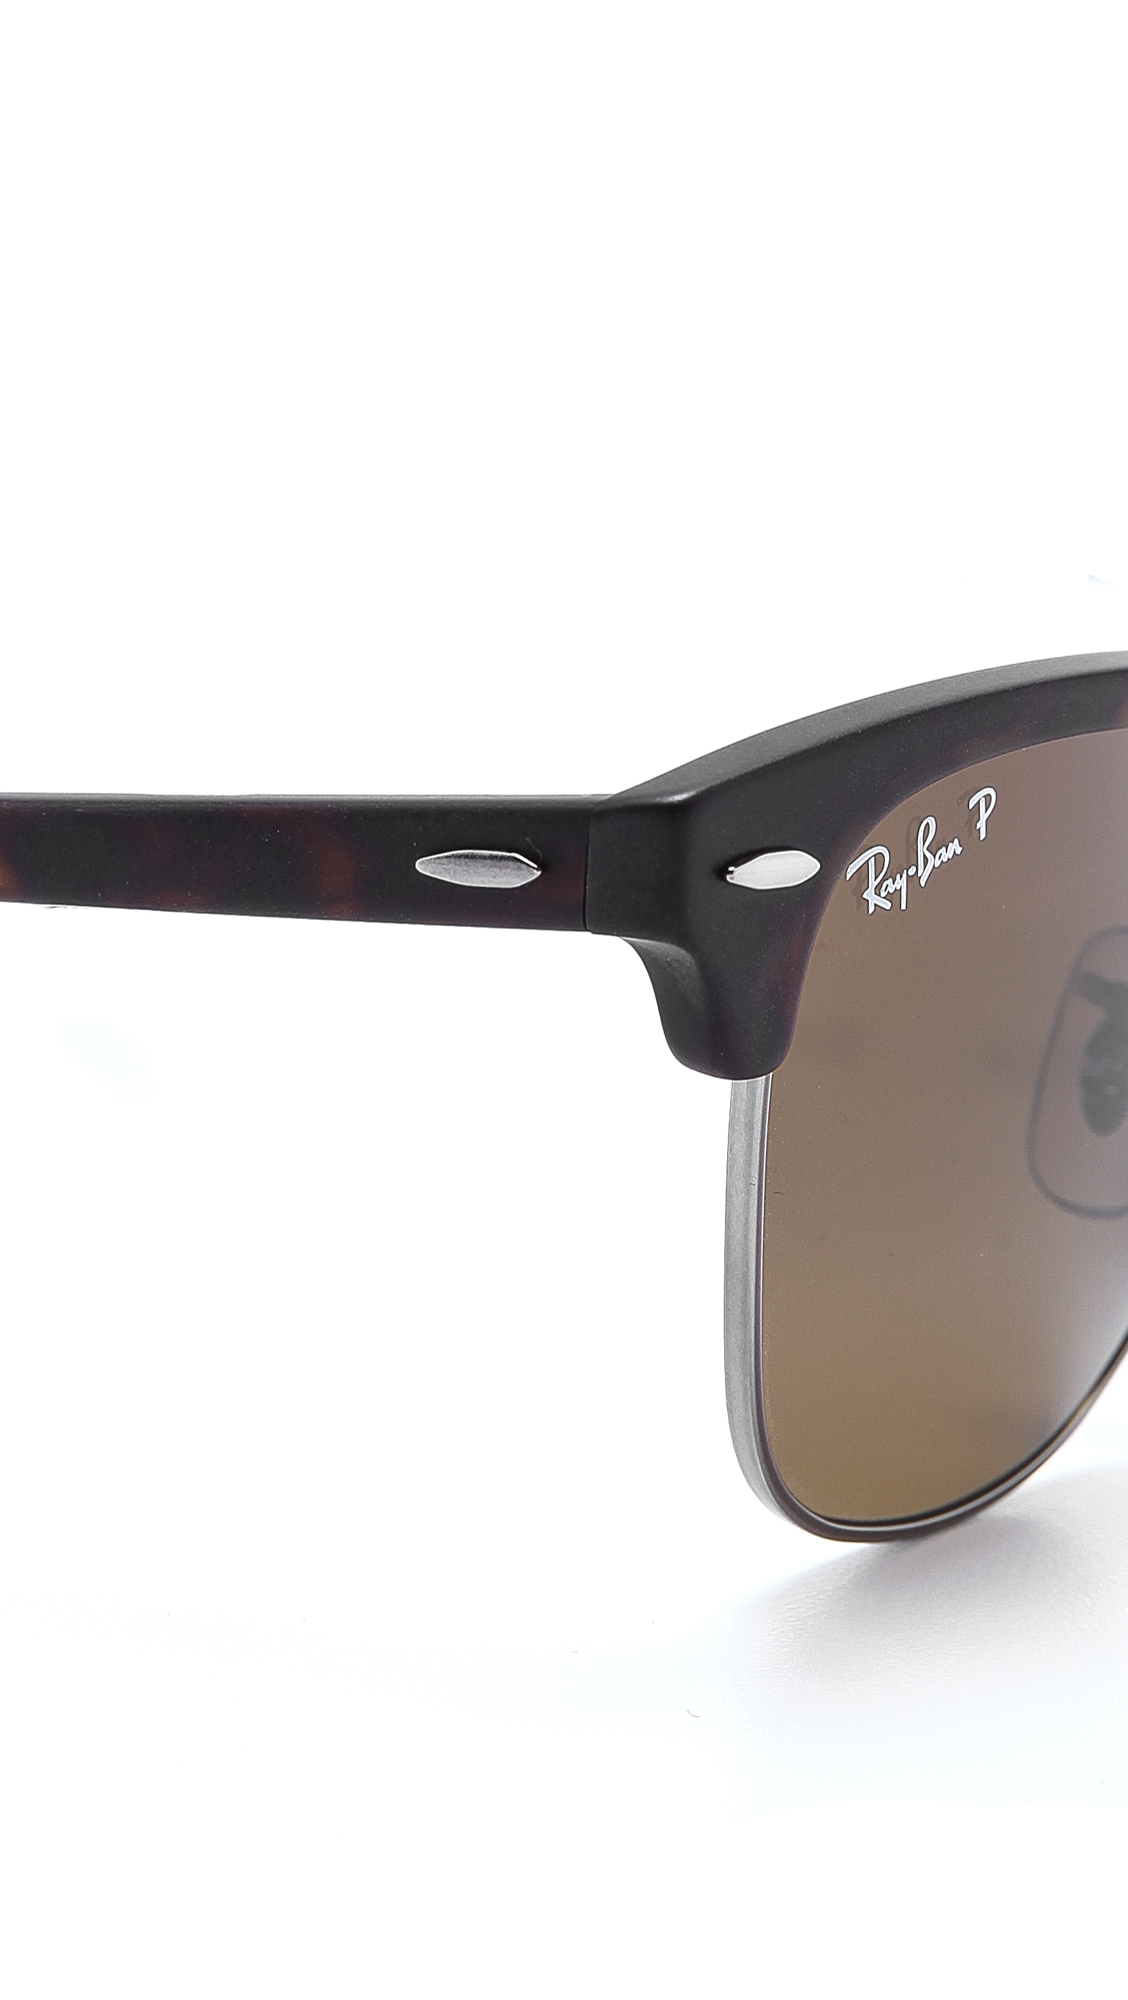 8c040cba744 ... sale lyst ray ban clubmaster folding polarized sunglasses in brown for  men 1becd d9175